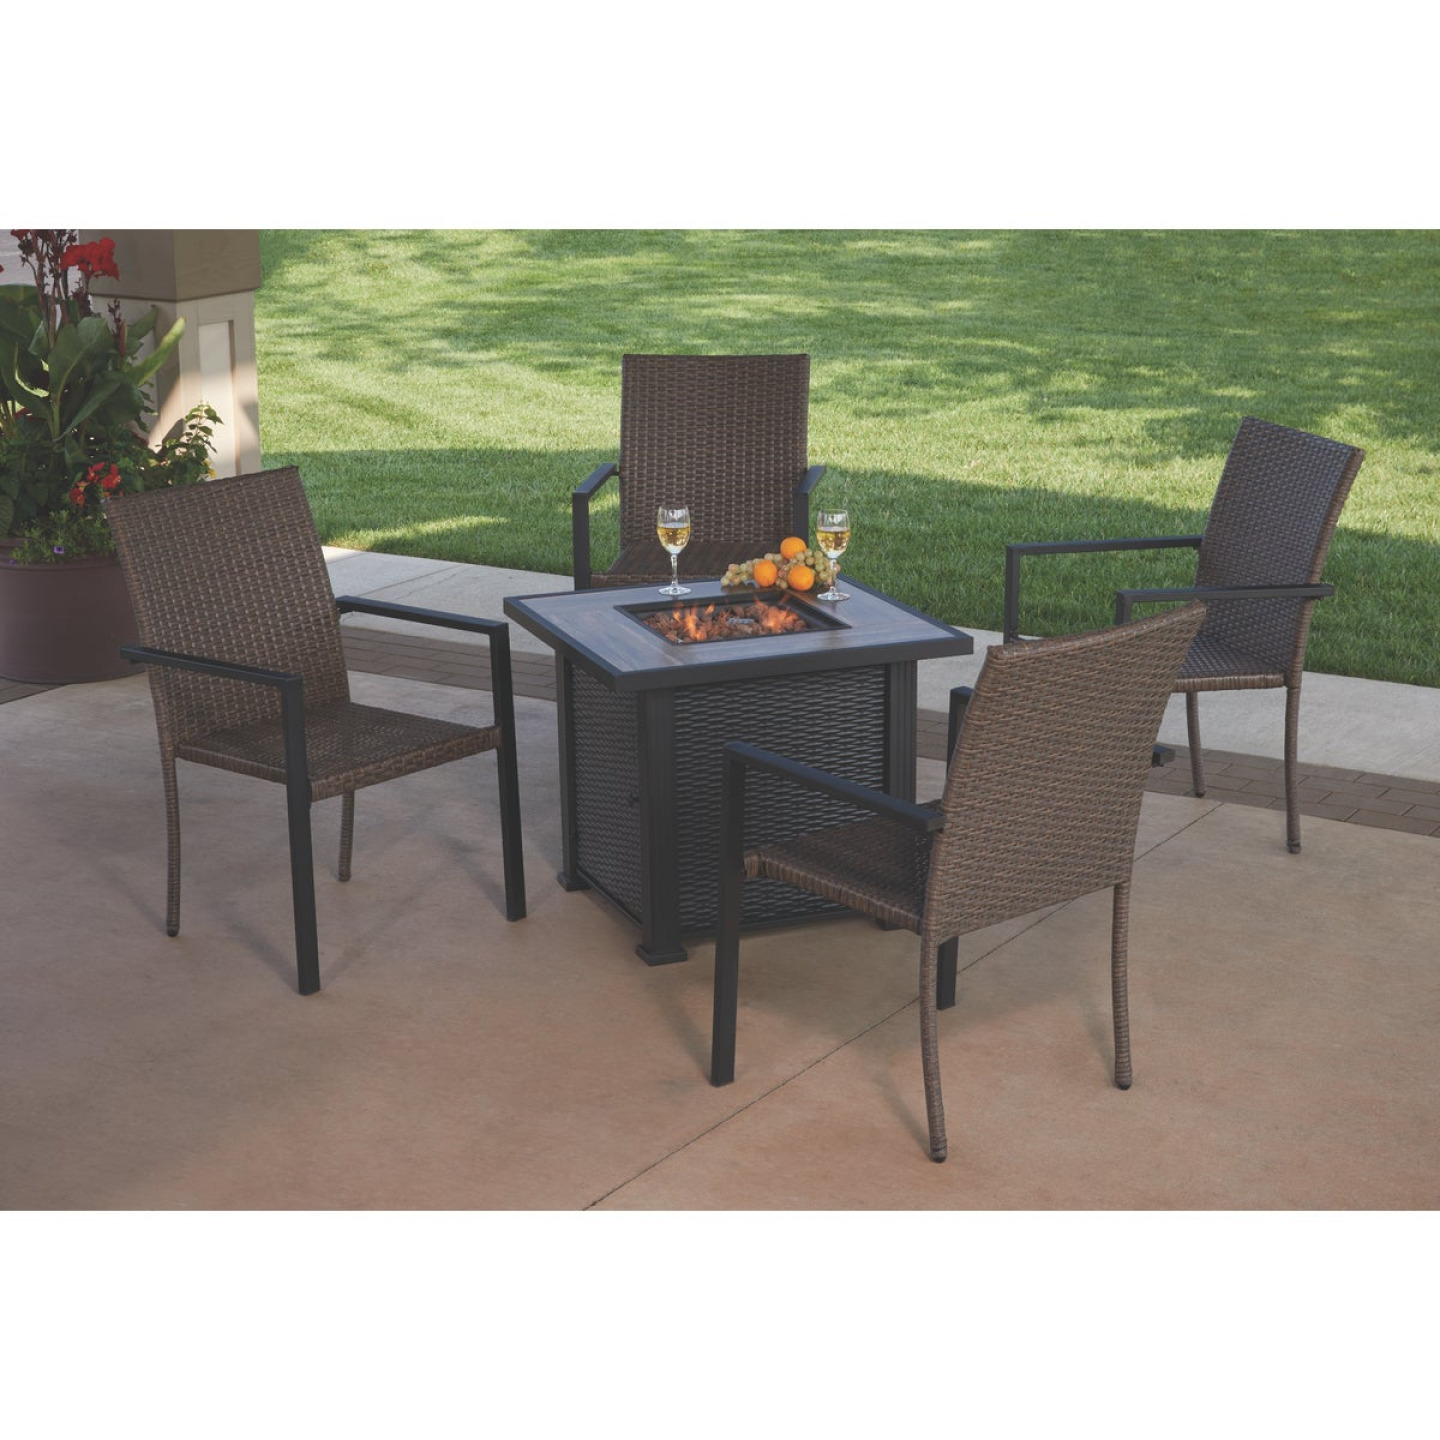 Leisure Classics Madrid 5-Piece Fire Table Chat Set Image 2